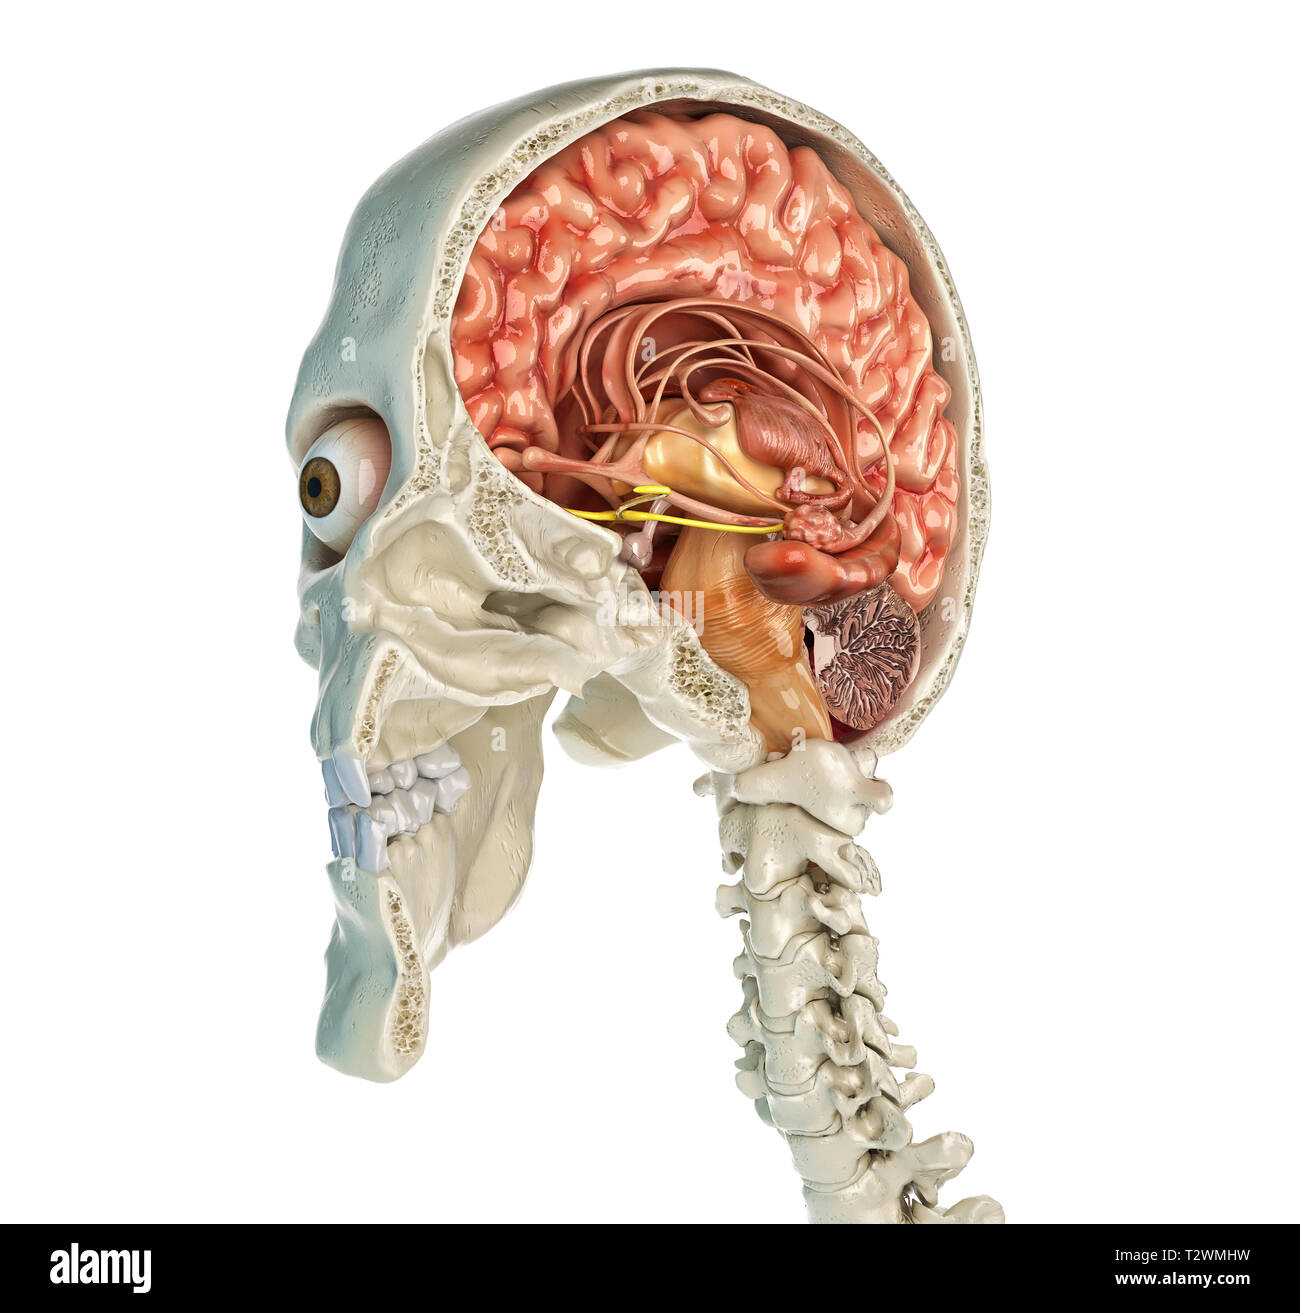 Human skull mid sagittal cross-section with brain. Perspective view on white background. - Stock Image